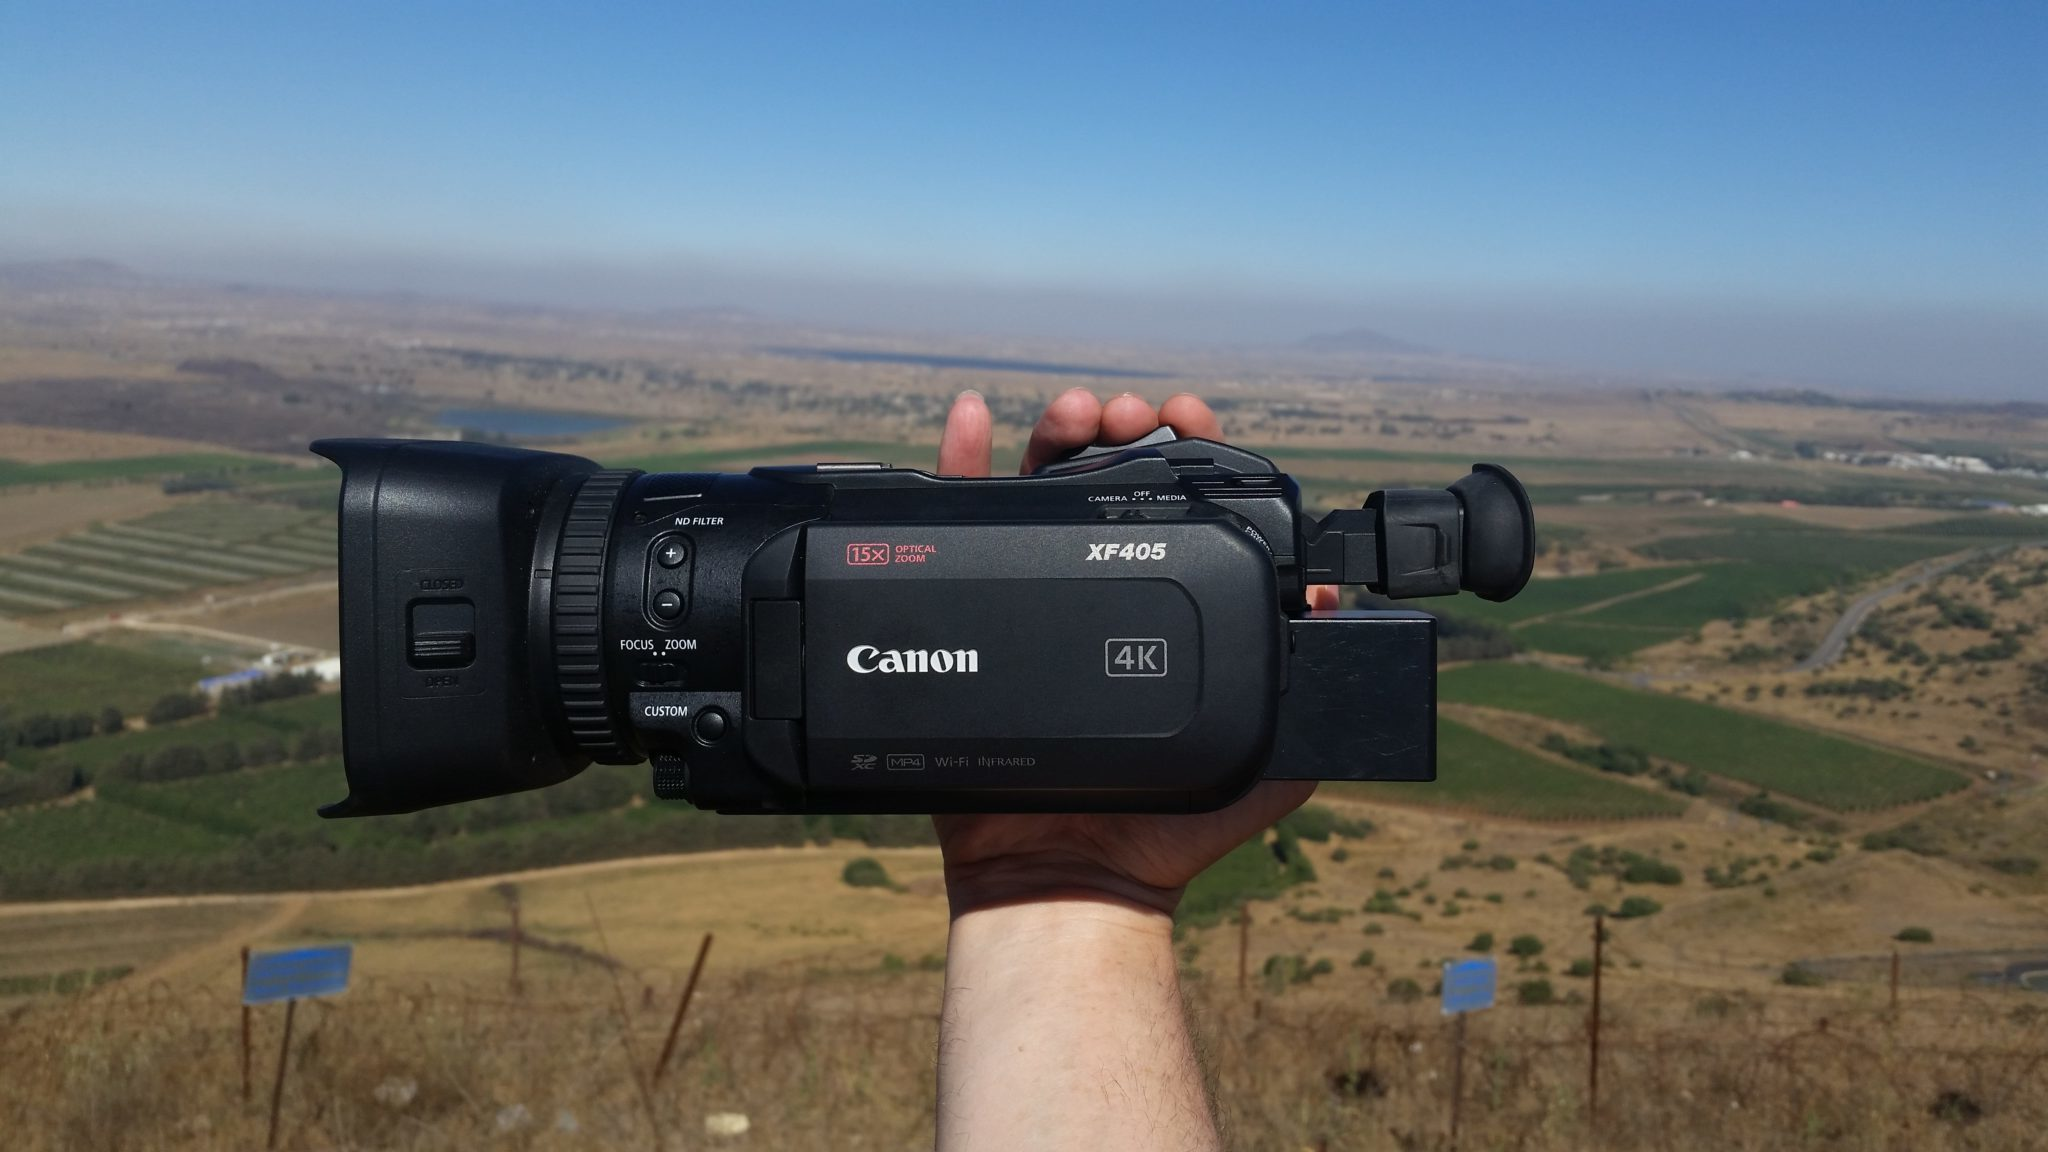 Canon XF405 in handheld mode